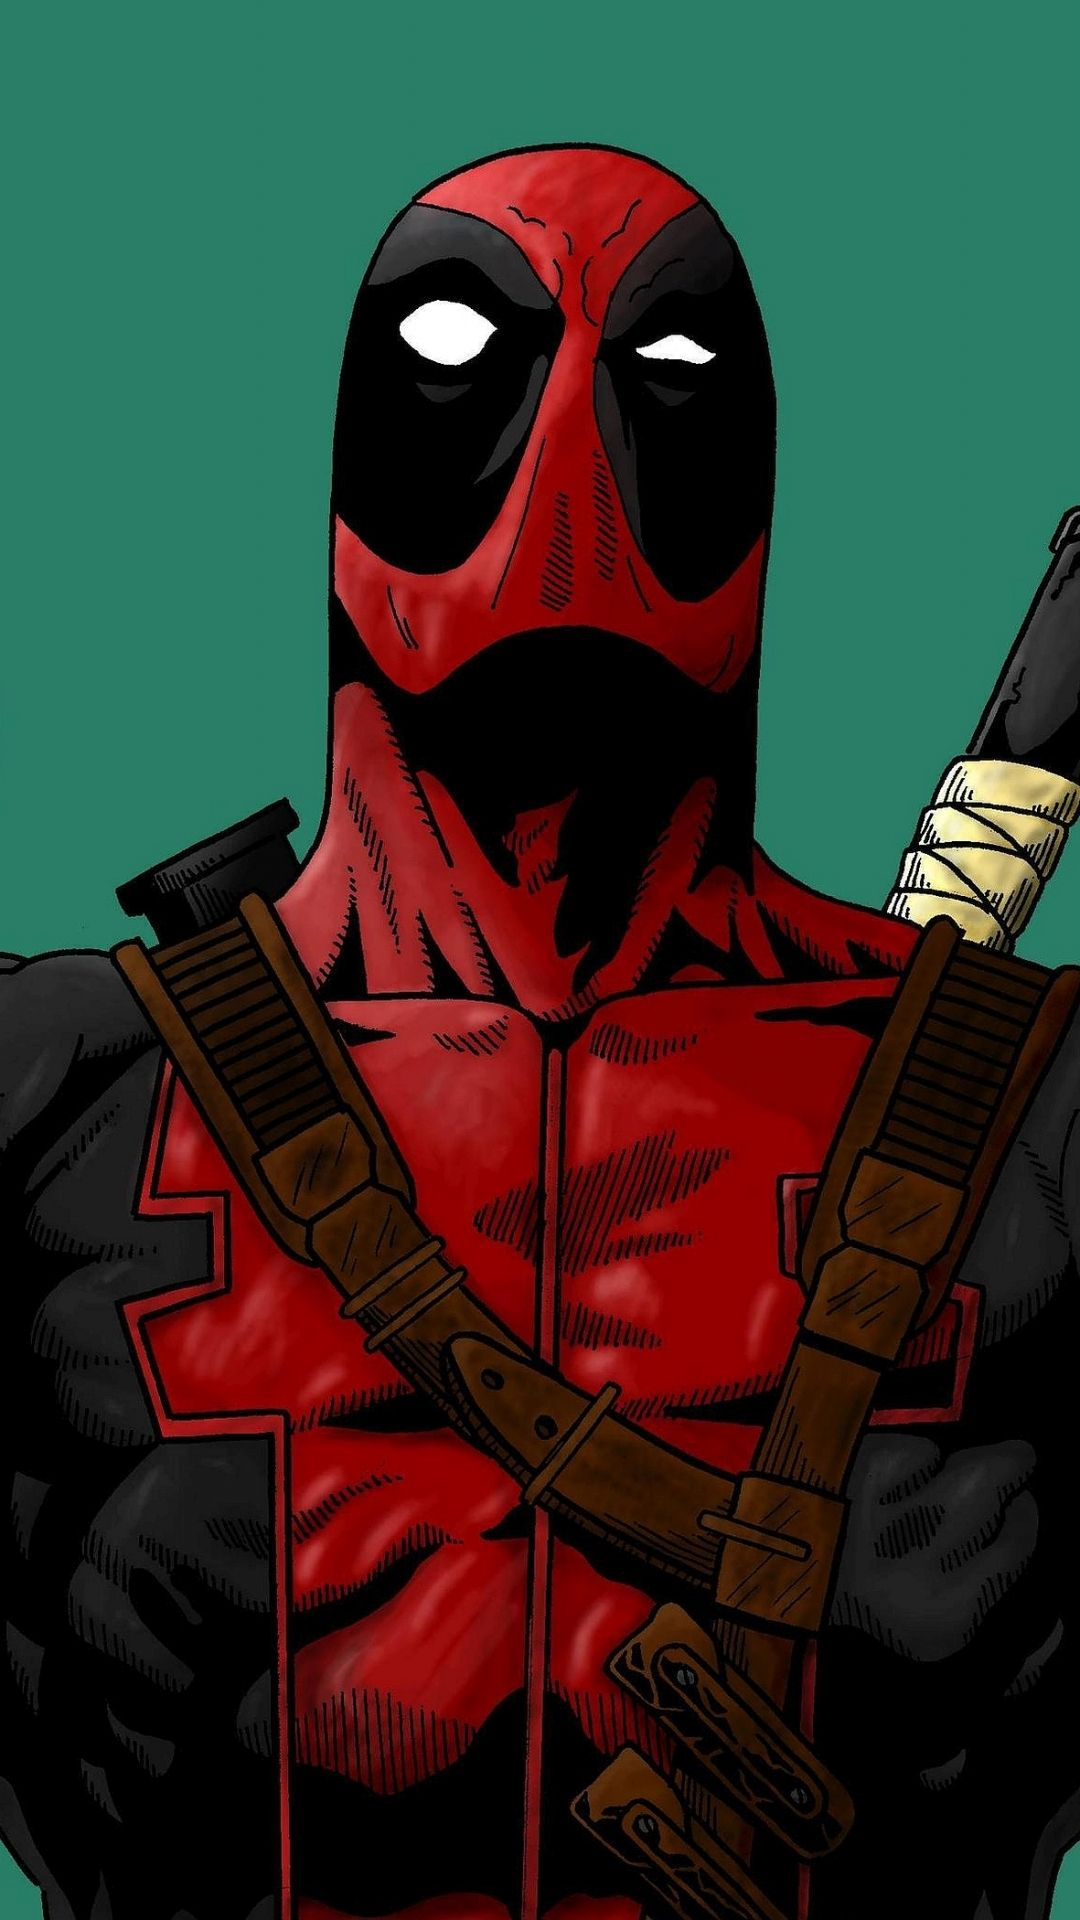 The Best Deadpool Wallpaper Ideas On Pinterest Deadpool